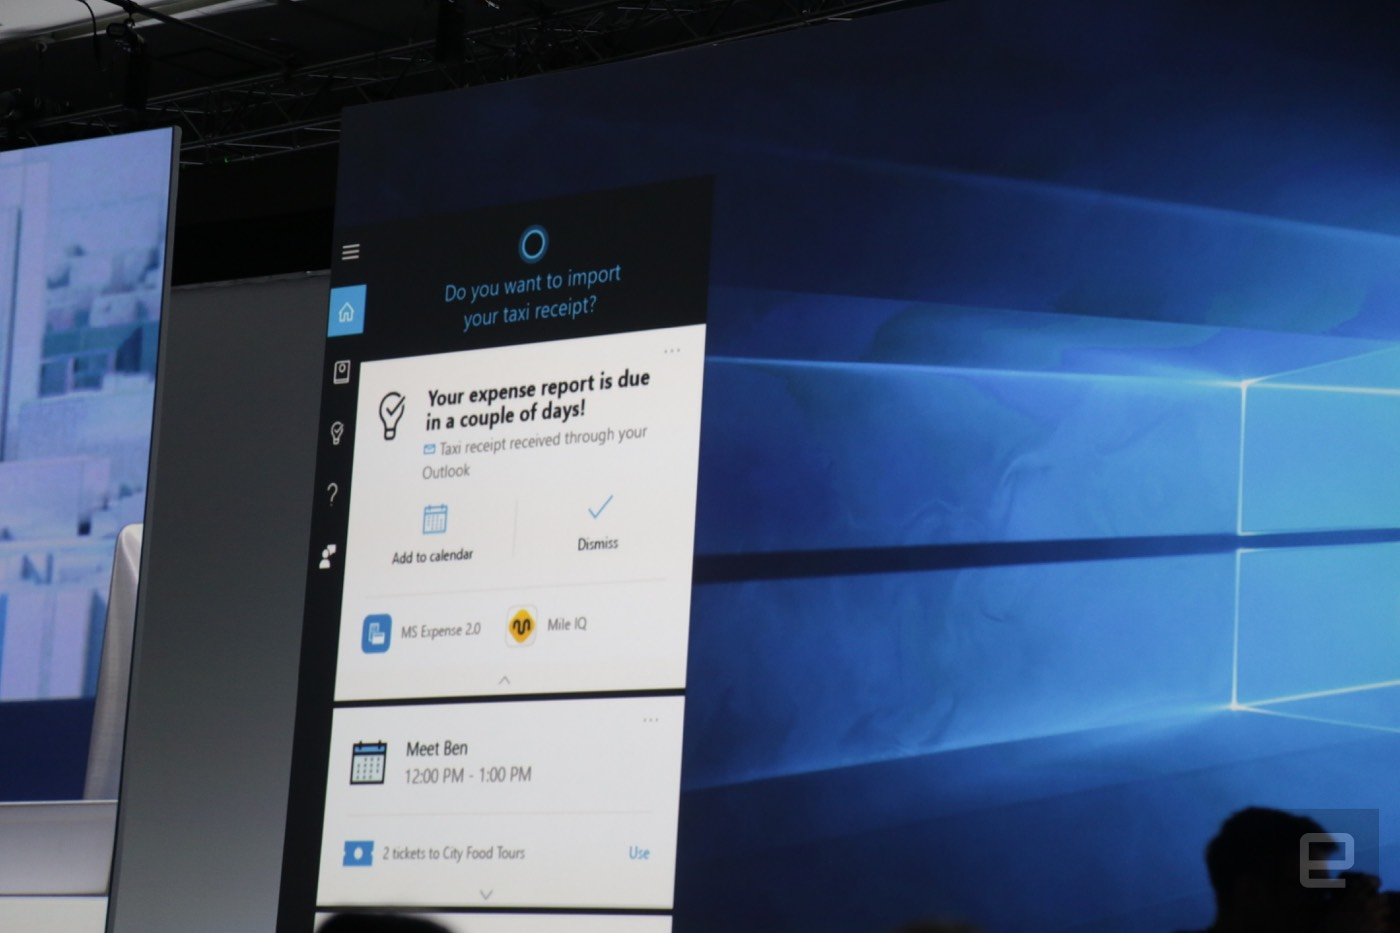 Cortana will soon make suggestions throughout your day